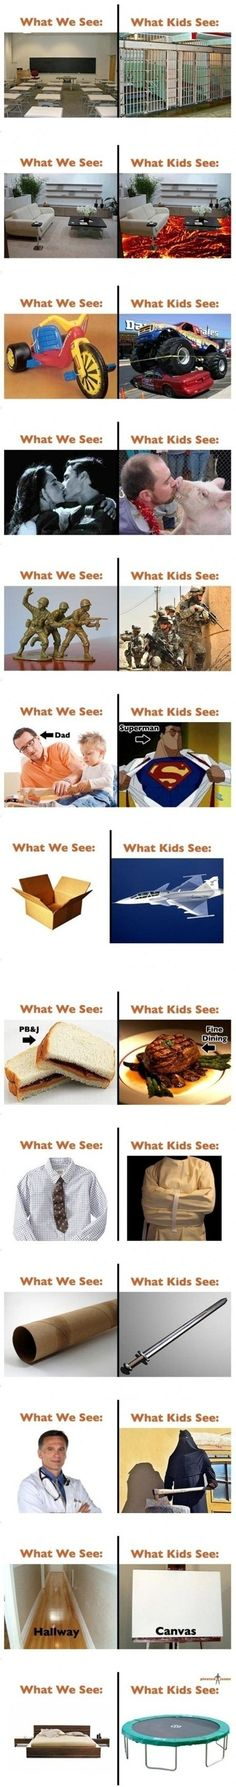 What We See & What Kids See